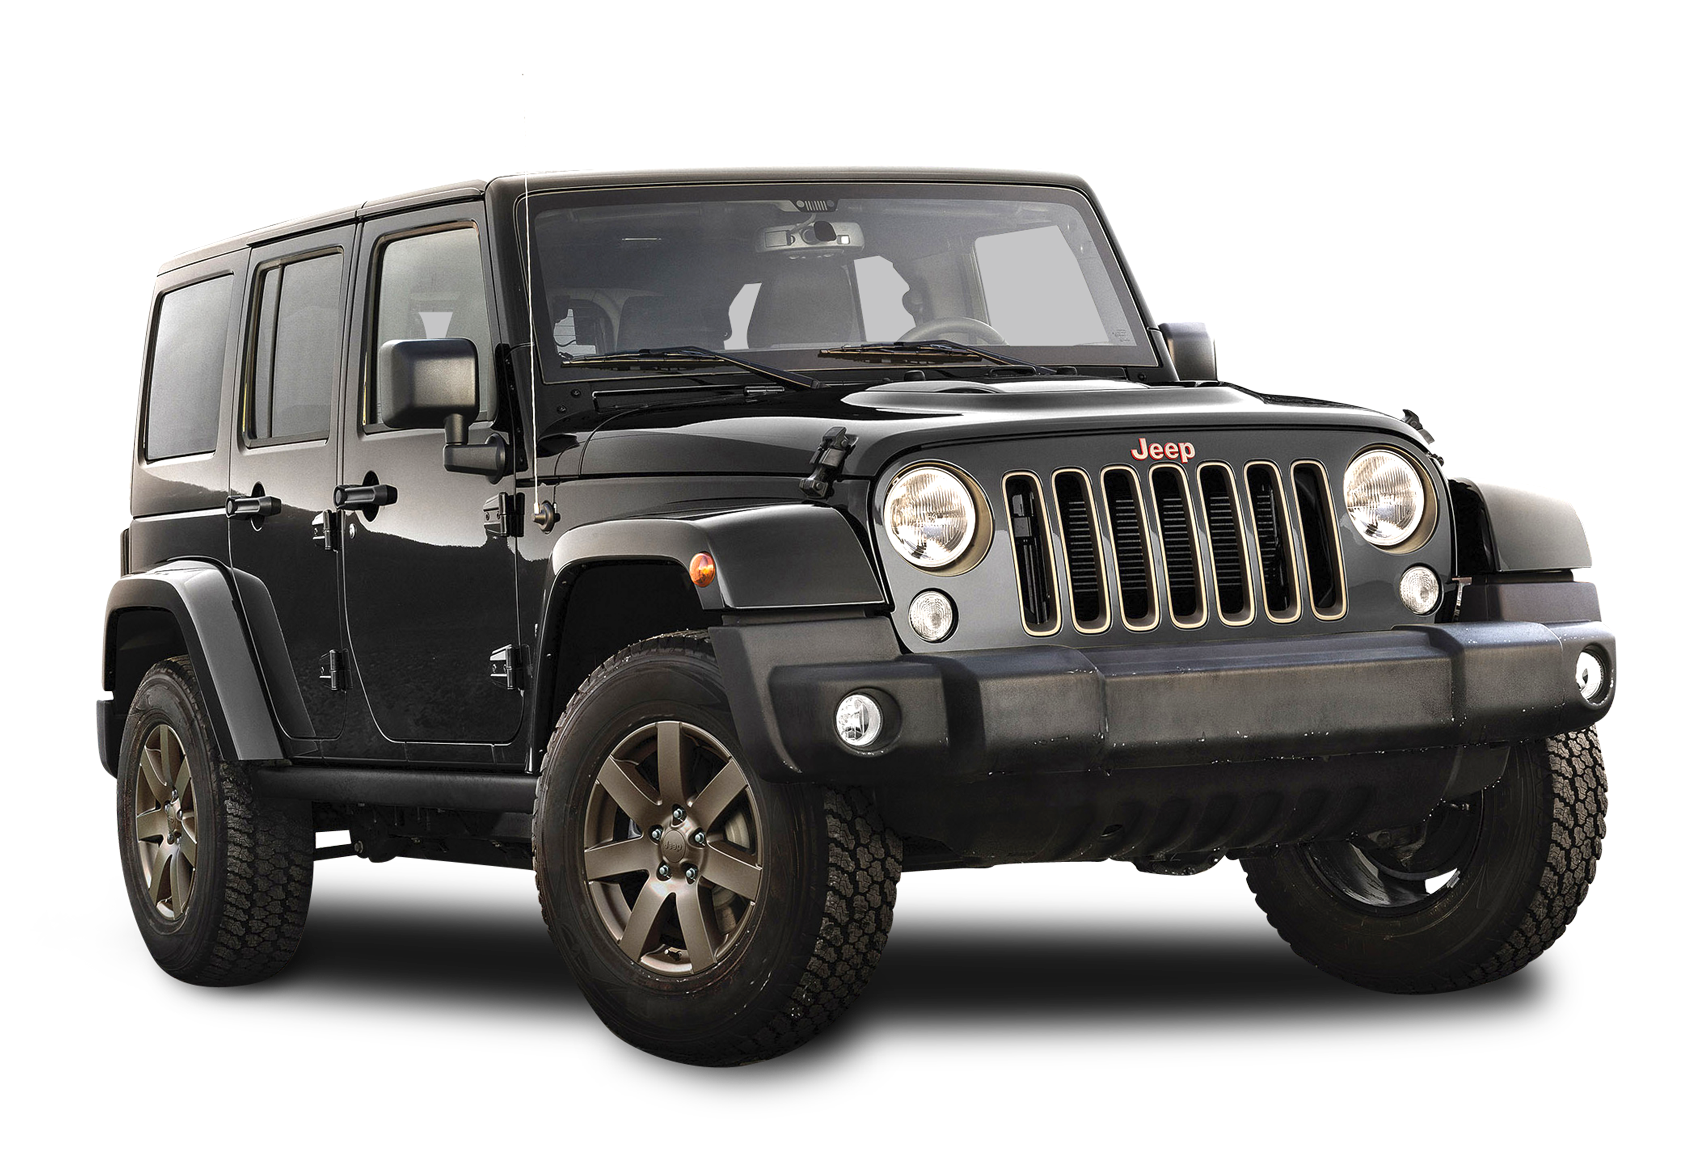 Black Jeep Wrangler Car